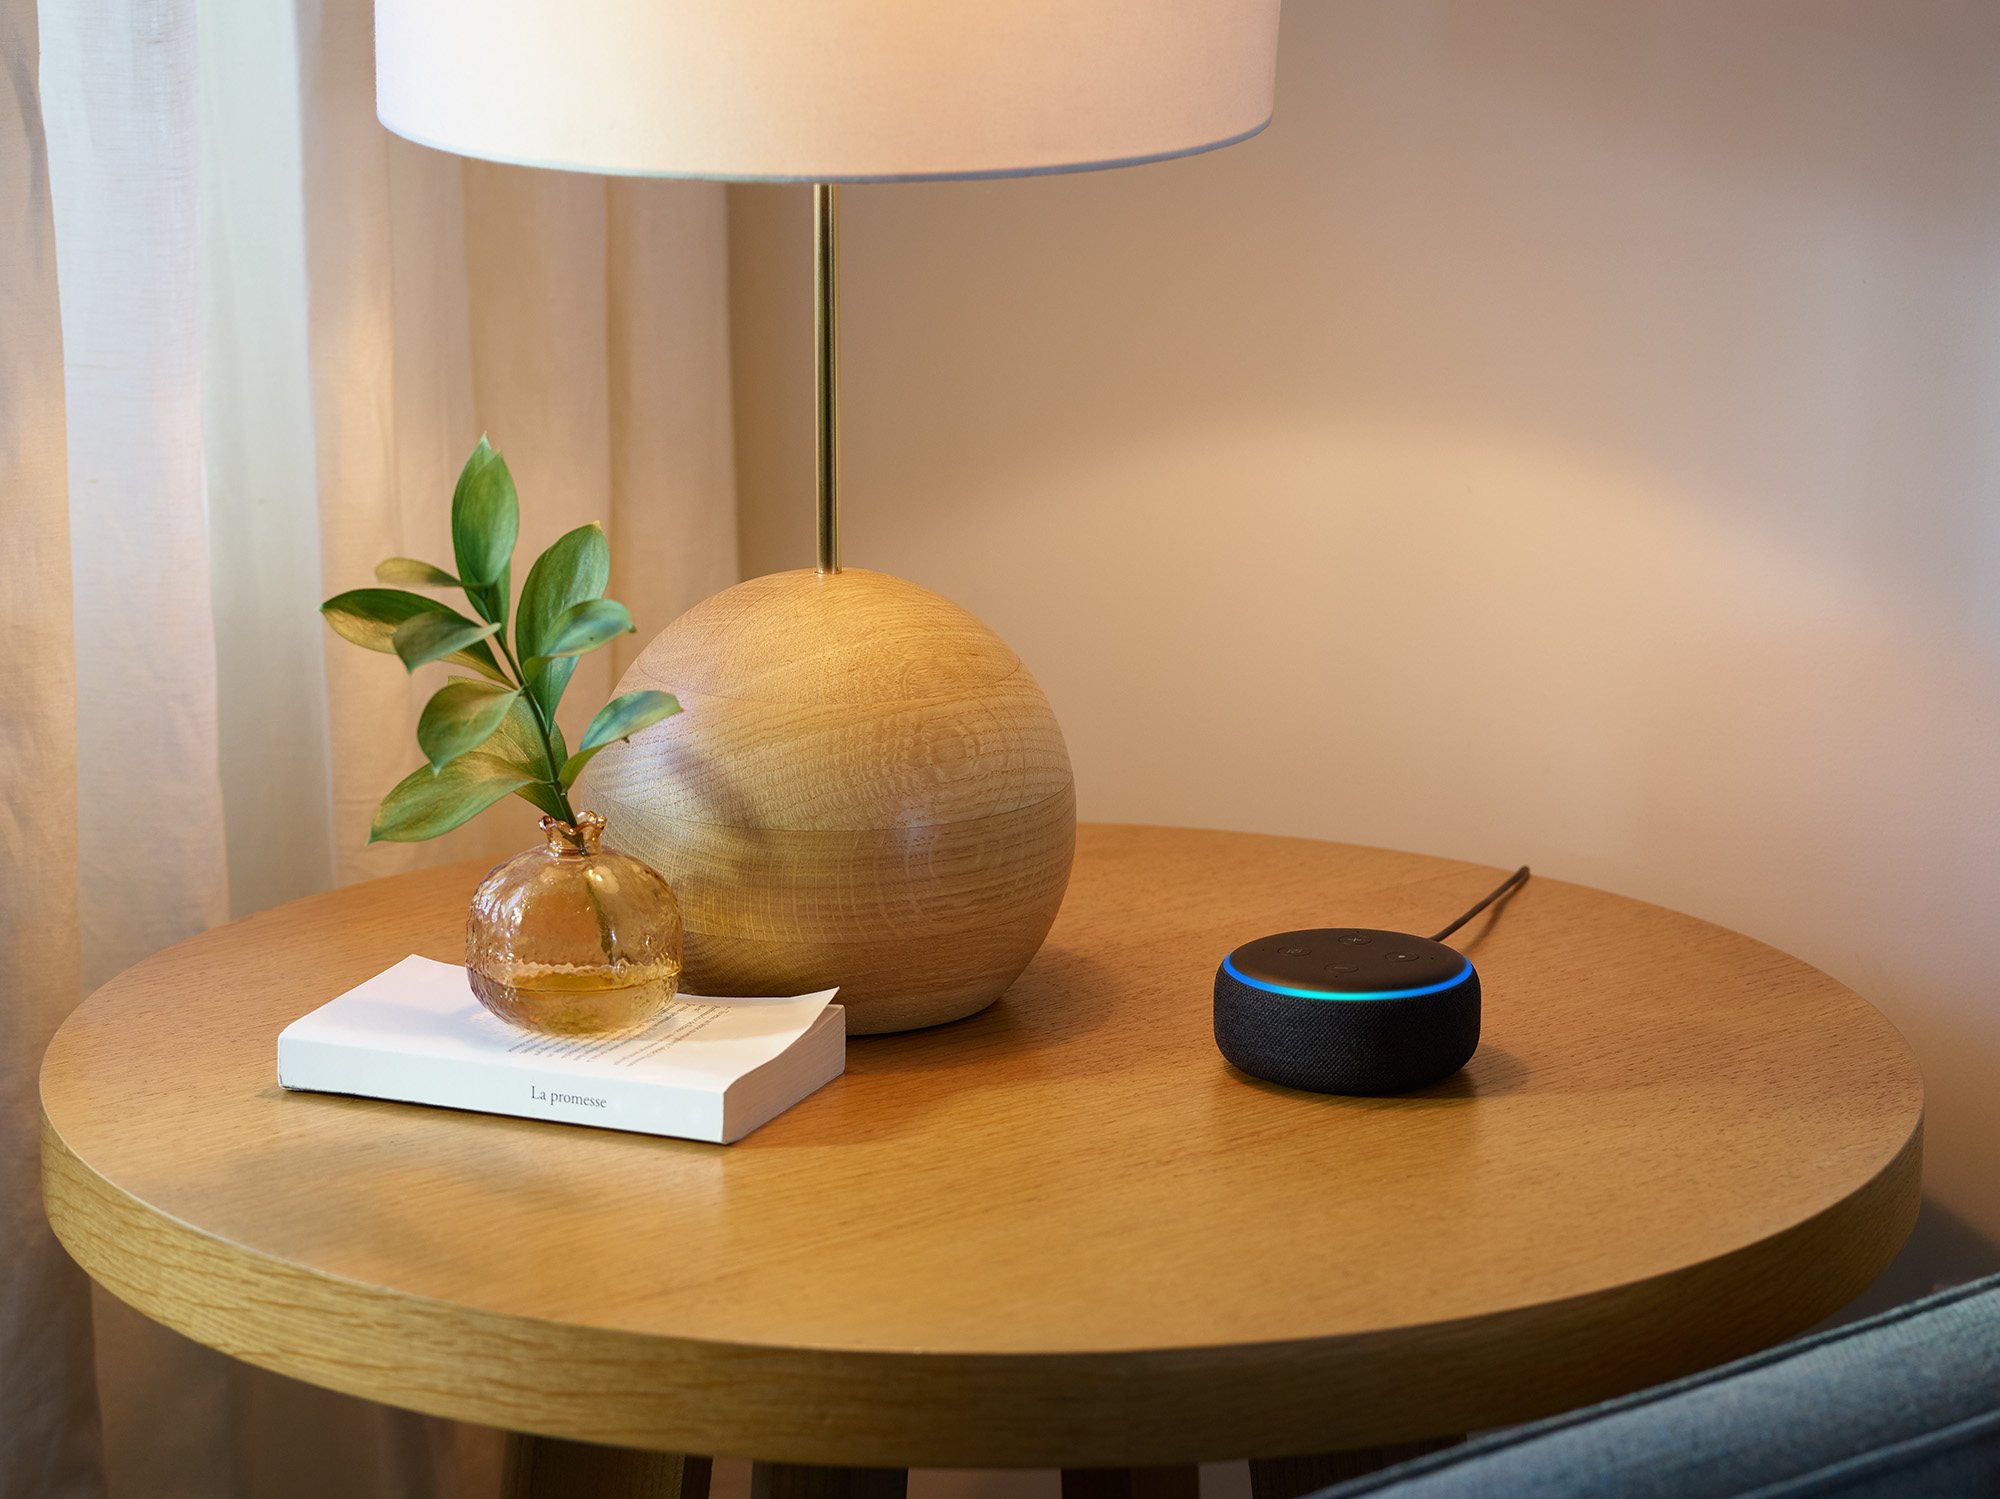 Amazon-Echo-Dot, Alexa